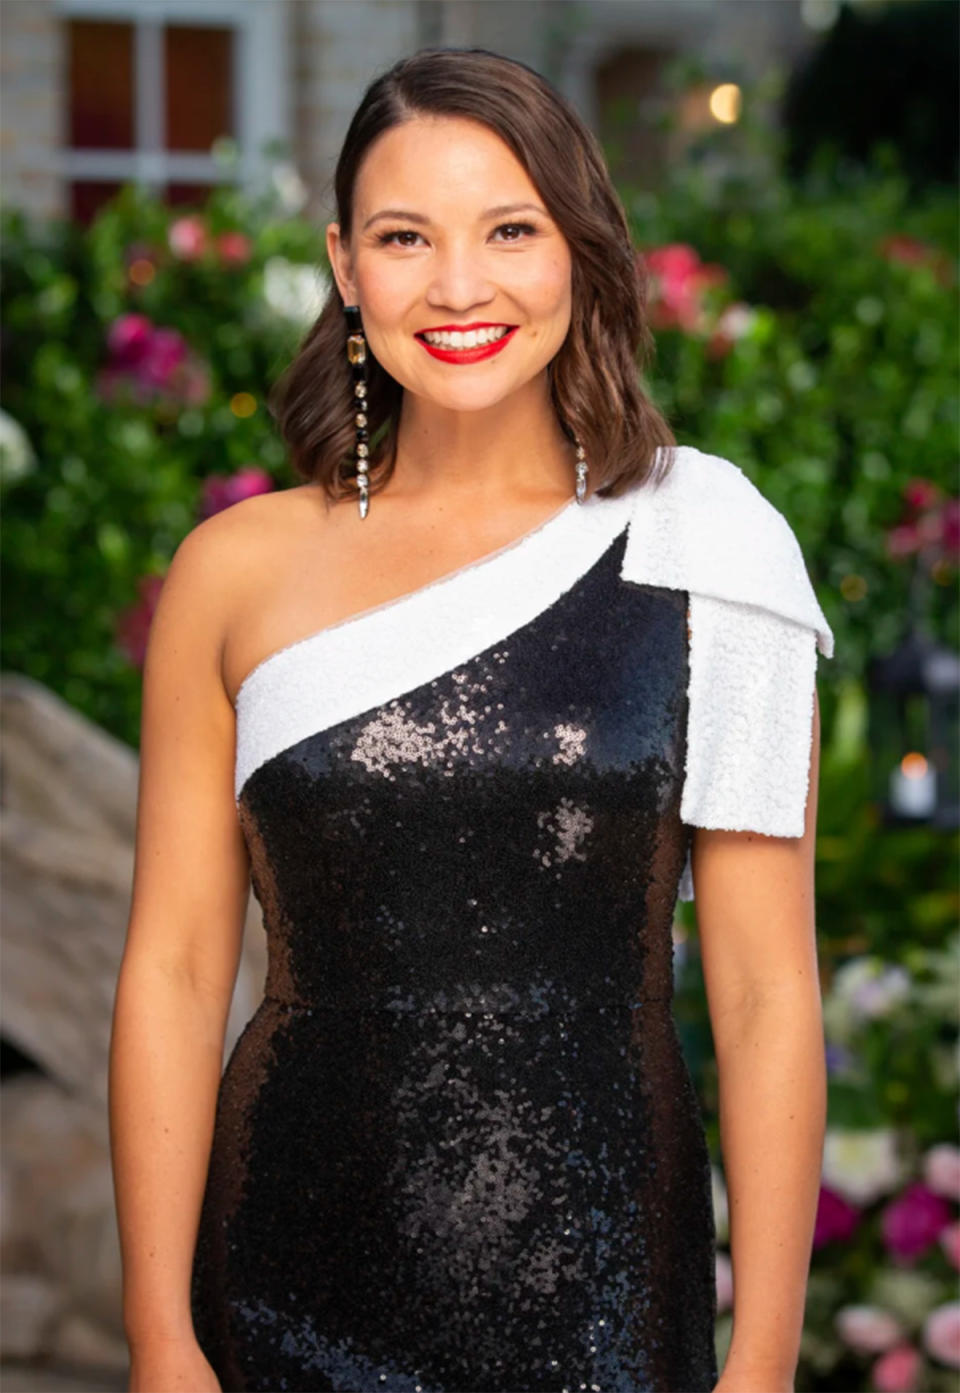 The Bachelor Australia 2021 contestant Chanel Tang, 34, Flight Manager wearing a black sequin one-shoulder dress